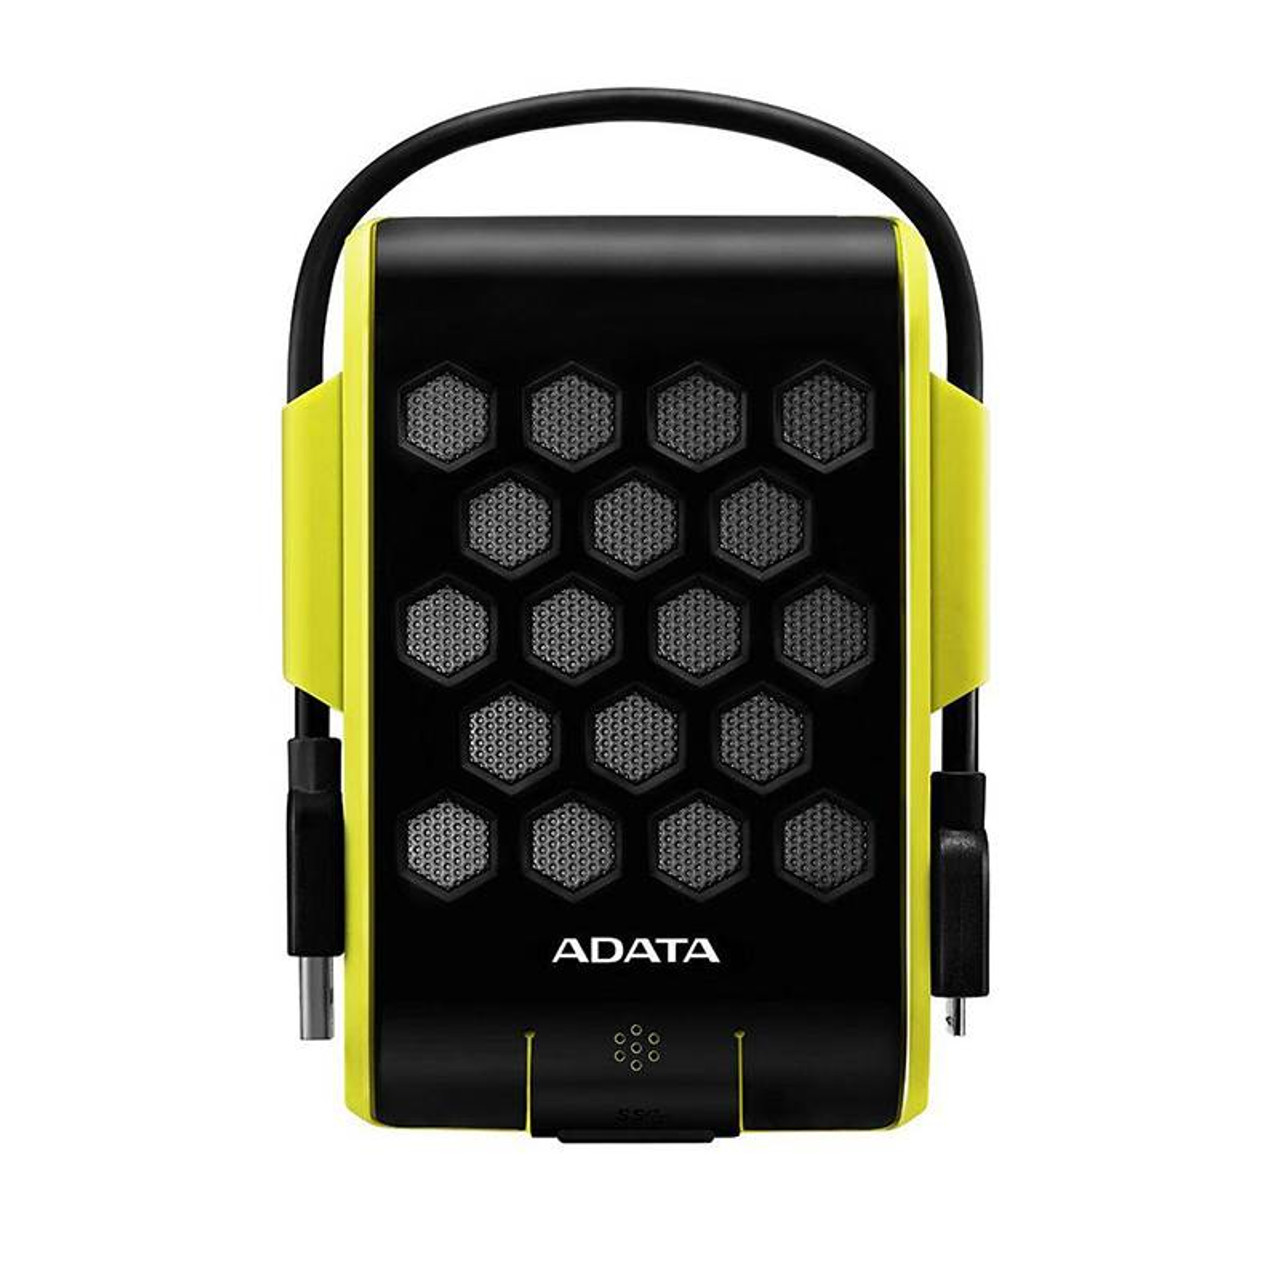 Image for Adata HD720 1TB USB 3.0 Military-grade Shockproof Portable External HDD - Green CX Computer Superstore